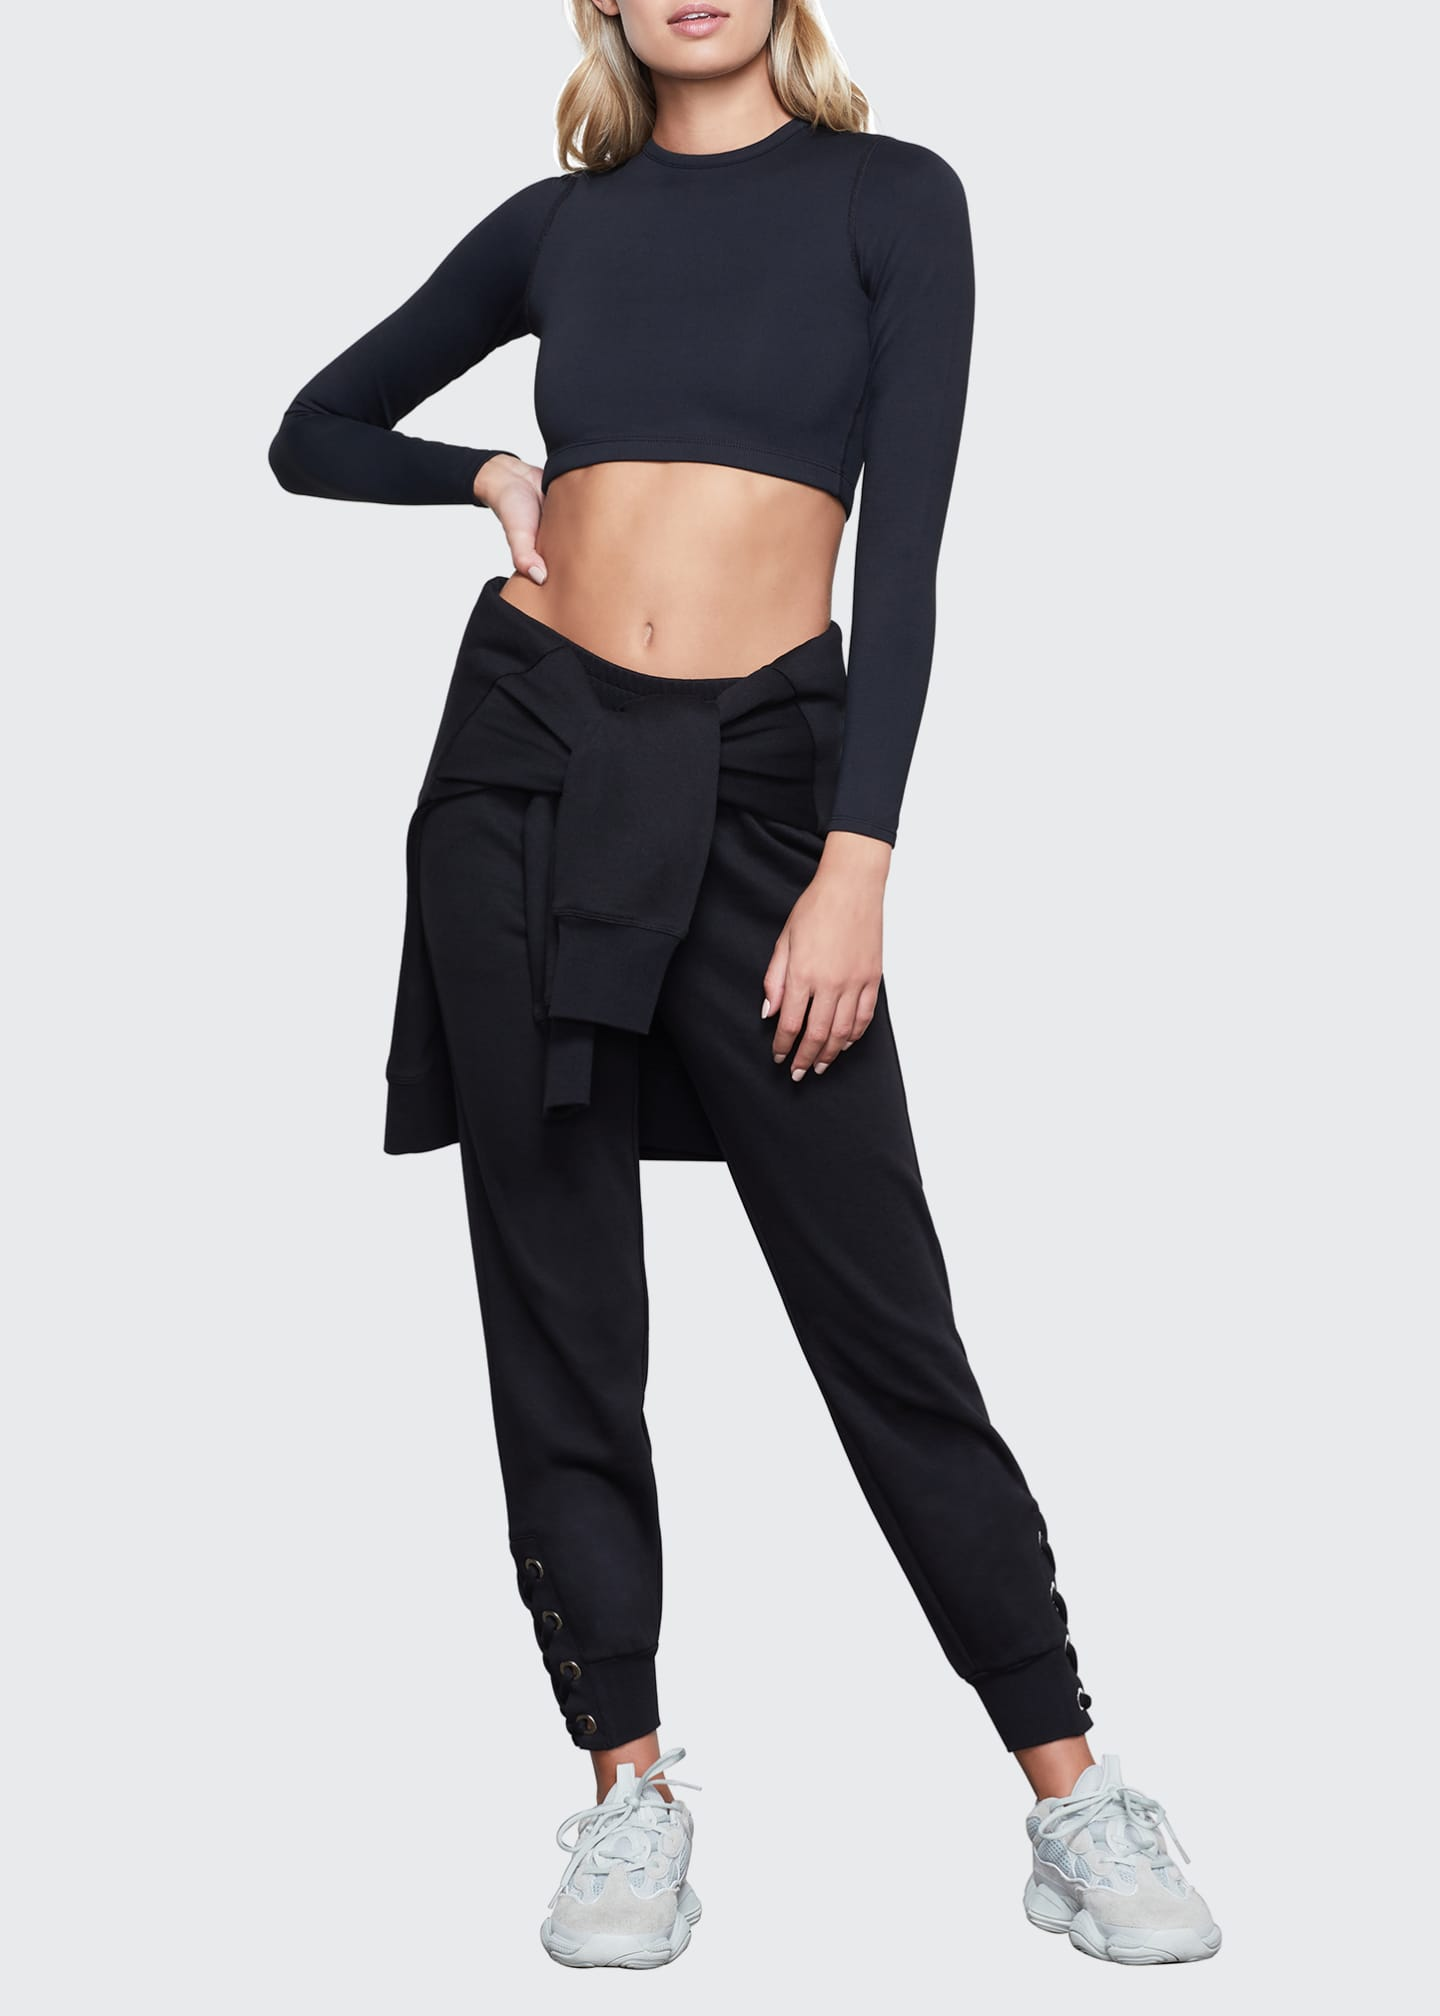 Image 1 of 3: Lace-Up Jogger Pants - Inclusive Sizing